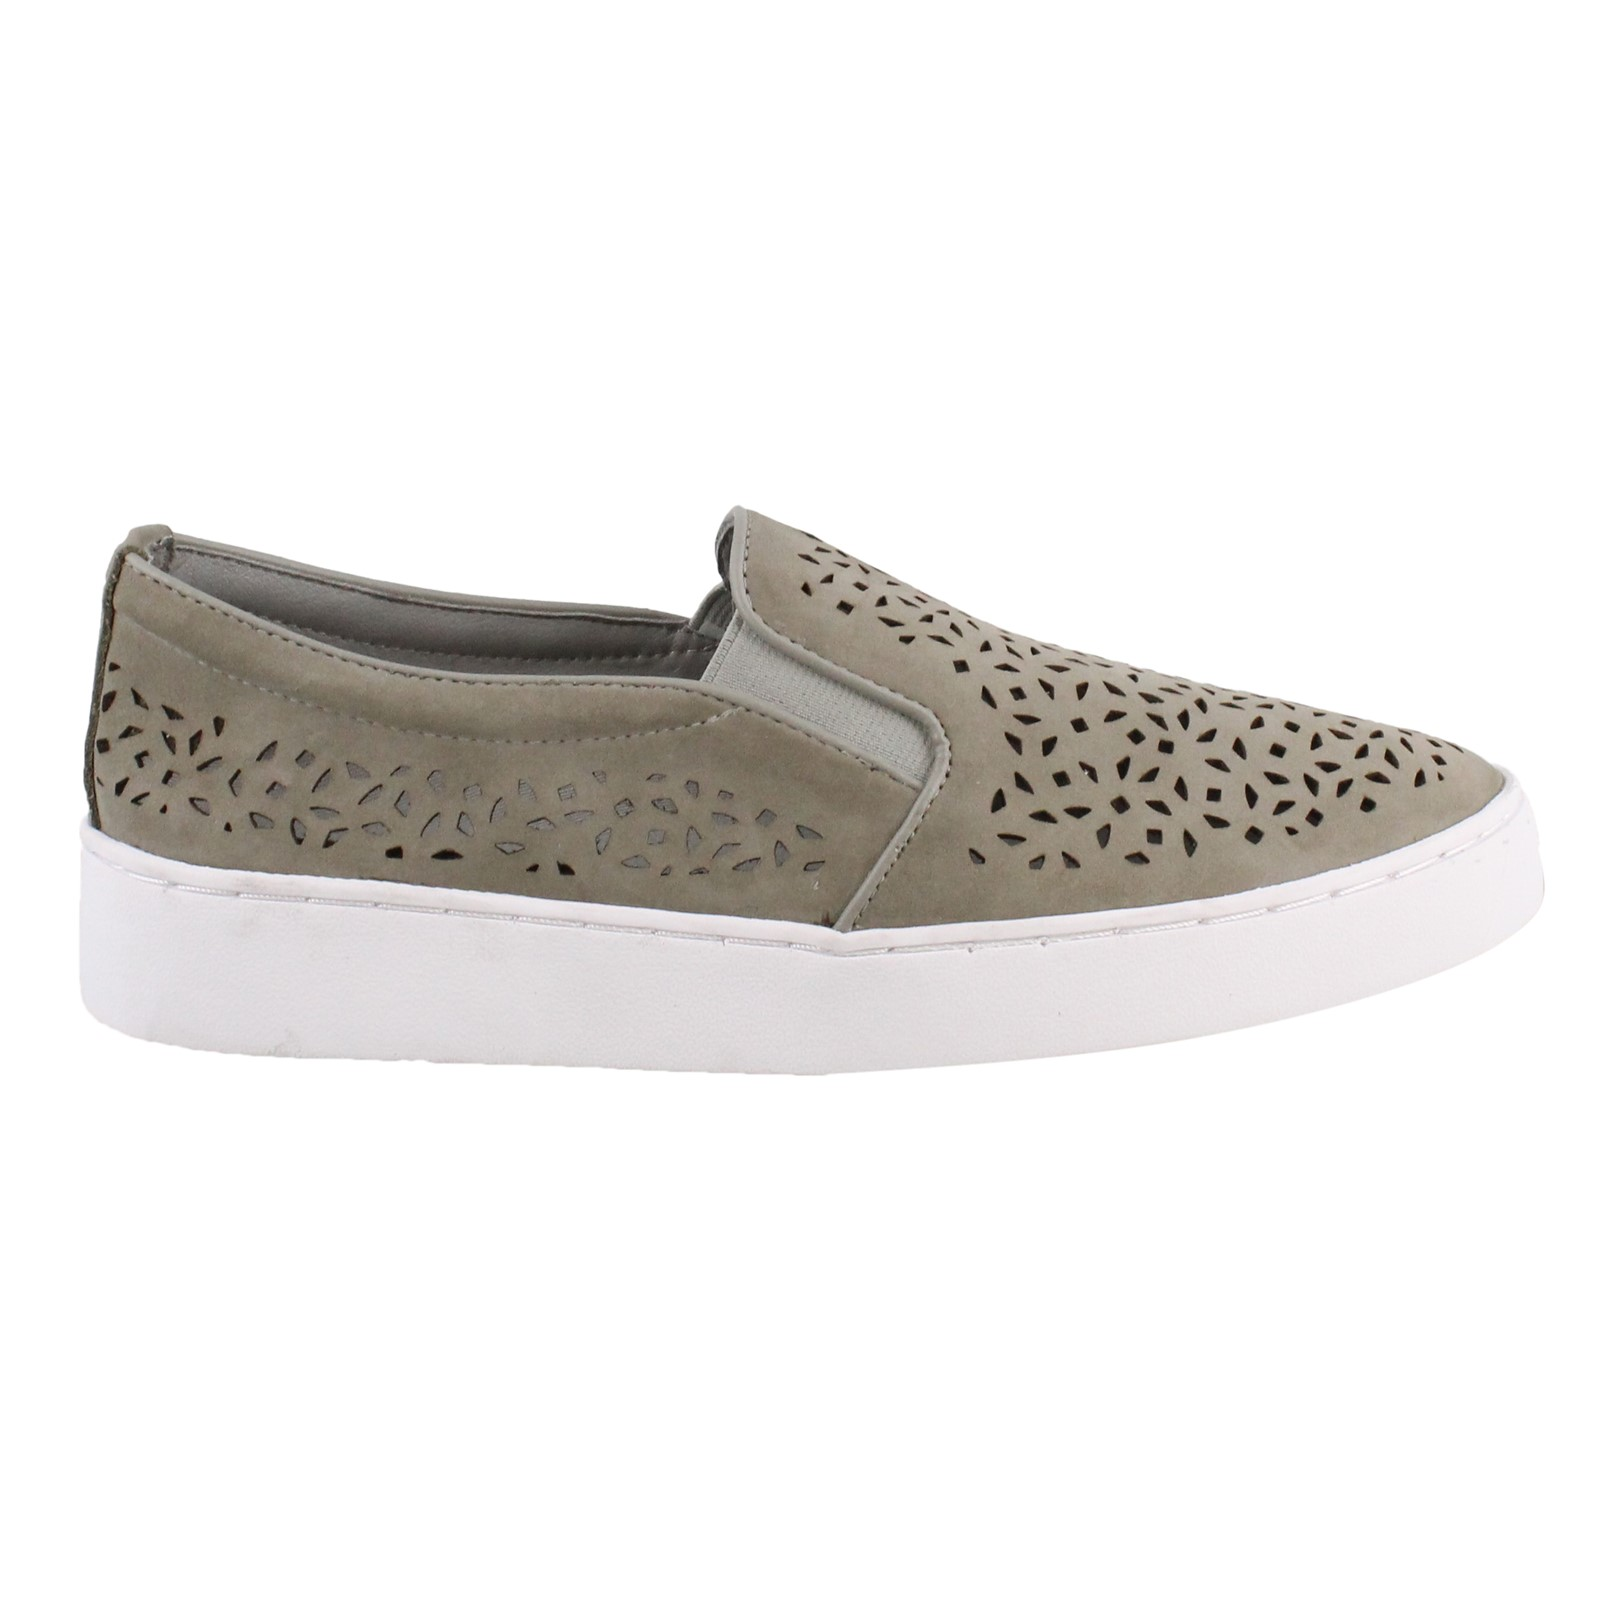 Women's Vionic, Midi Perf Slip on Shoes